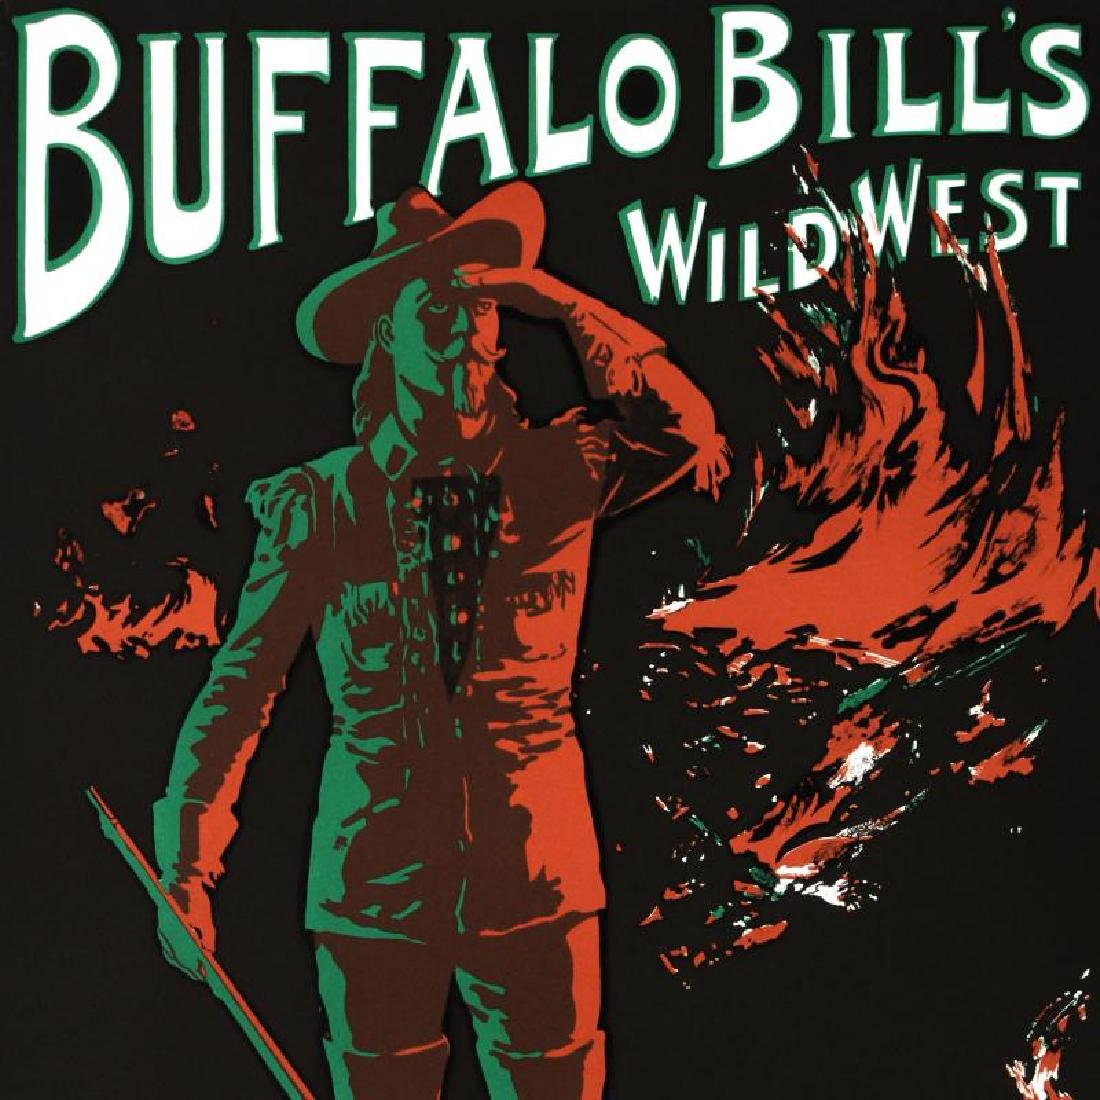 """""""Buffalo Bills Wild West"""" Hand Pulled Lithograph by the - 2"""